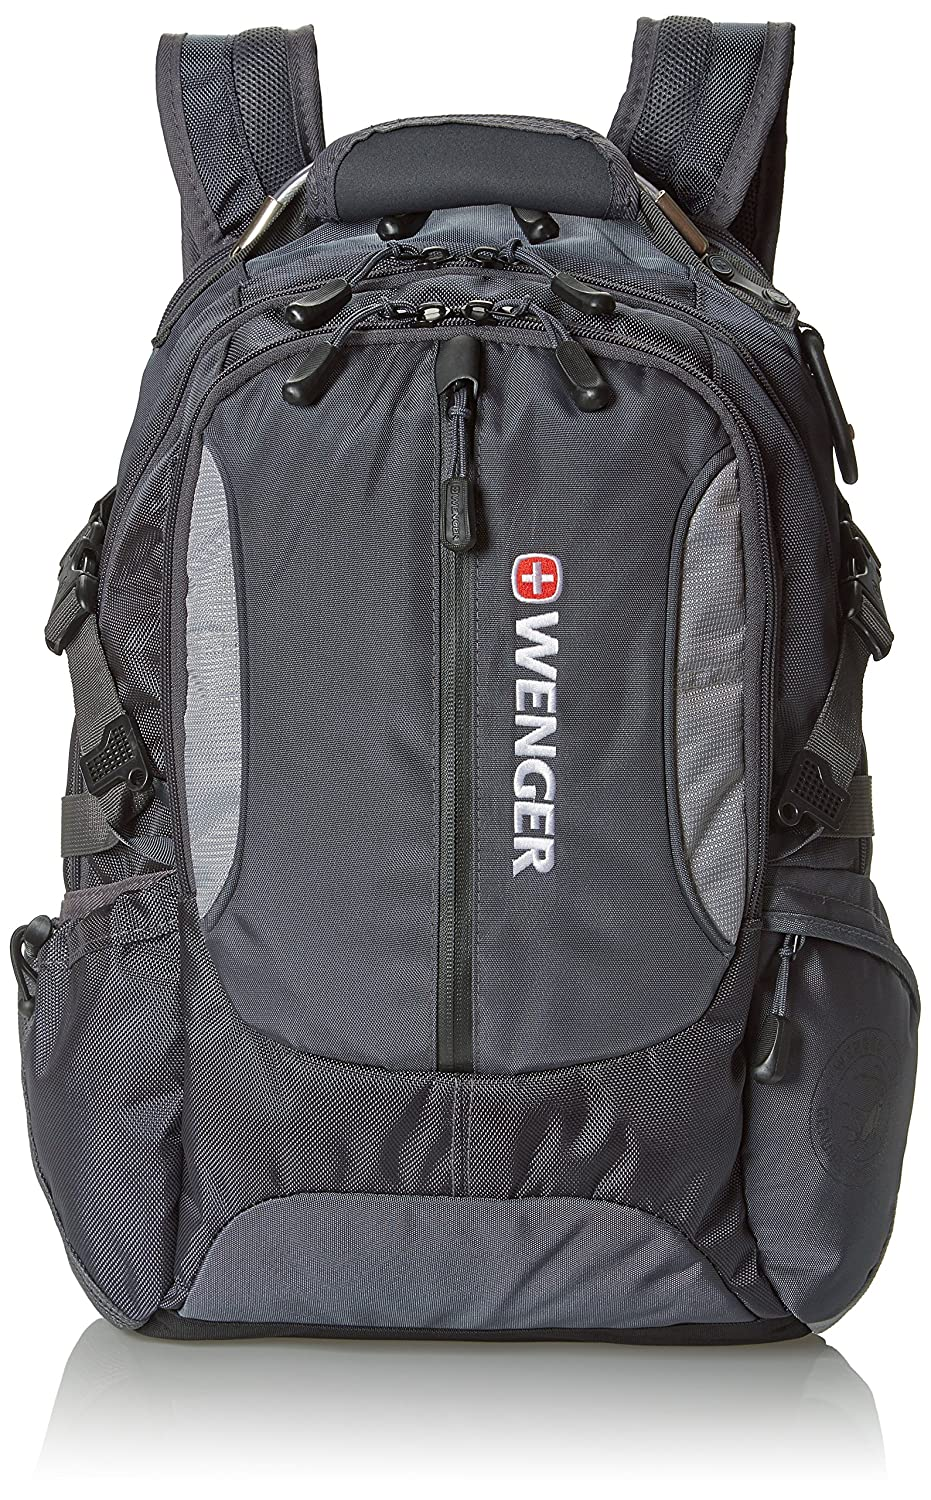 Wenger SA1537 Grey Computer Backpack Fits Most 15 Inch Laptops and Tablets